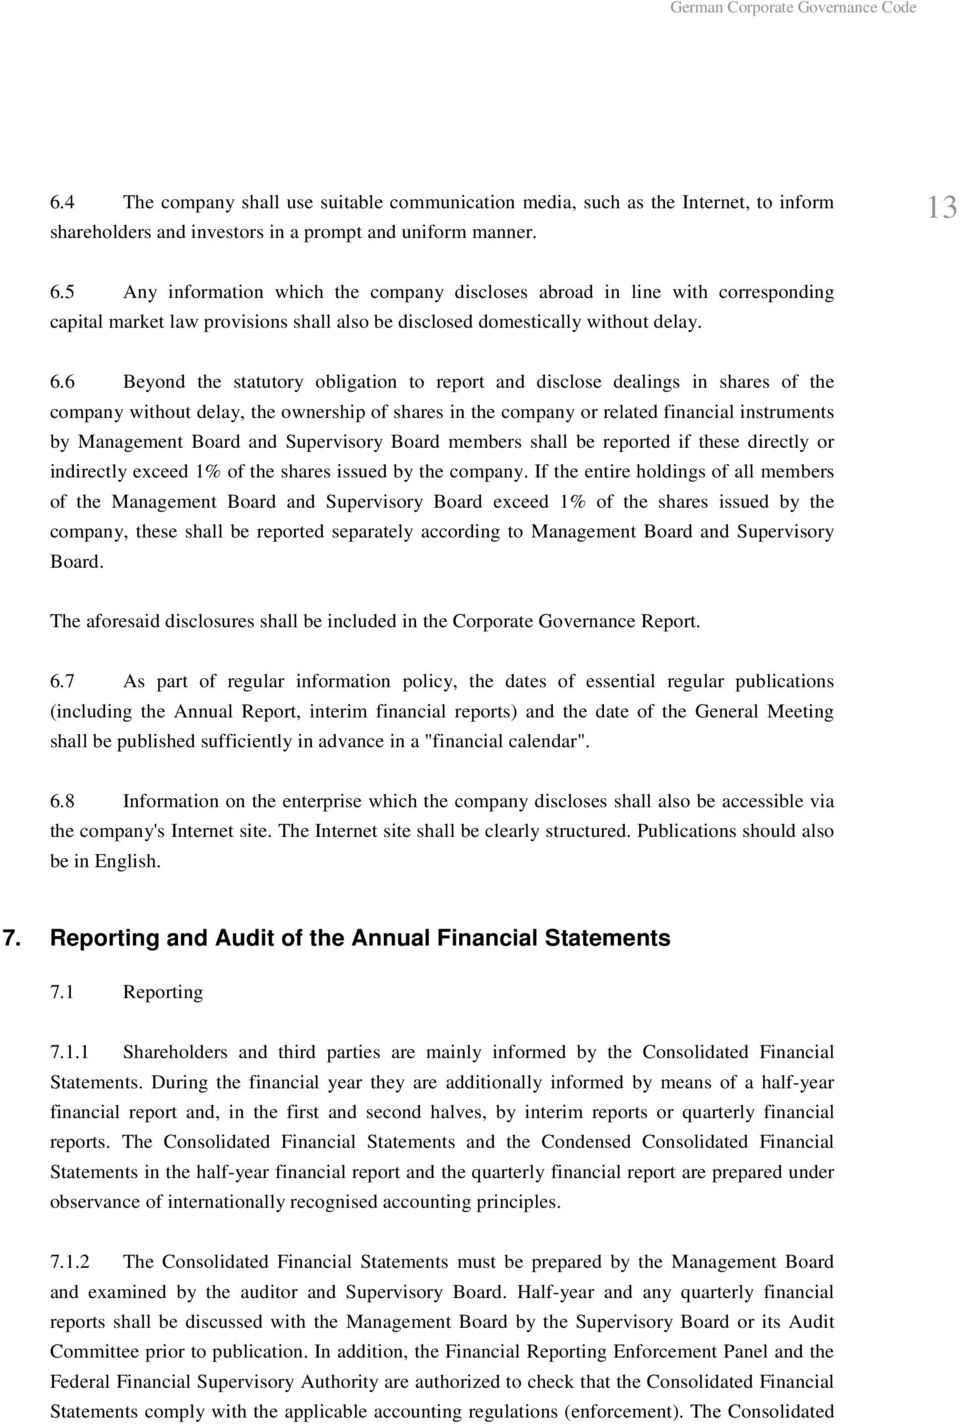 6 Beyond the statutory obligation to report and disclose dealings in shares of the company without delay, the ownership of shares in the company or related financial instruments by Management Board